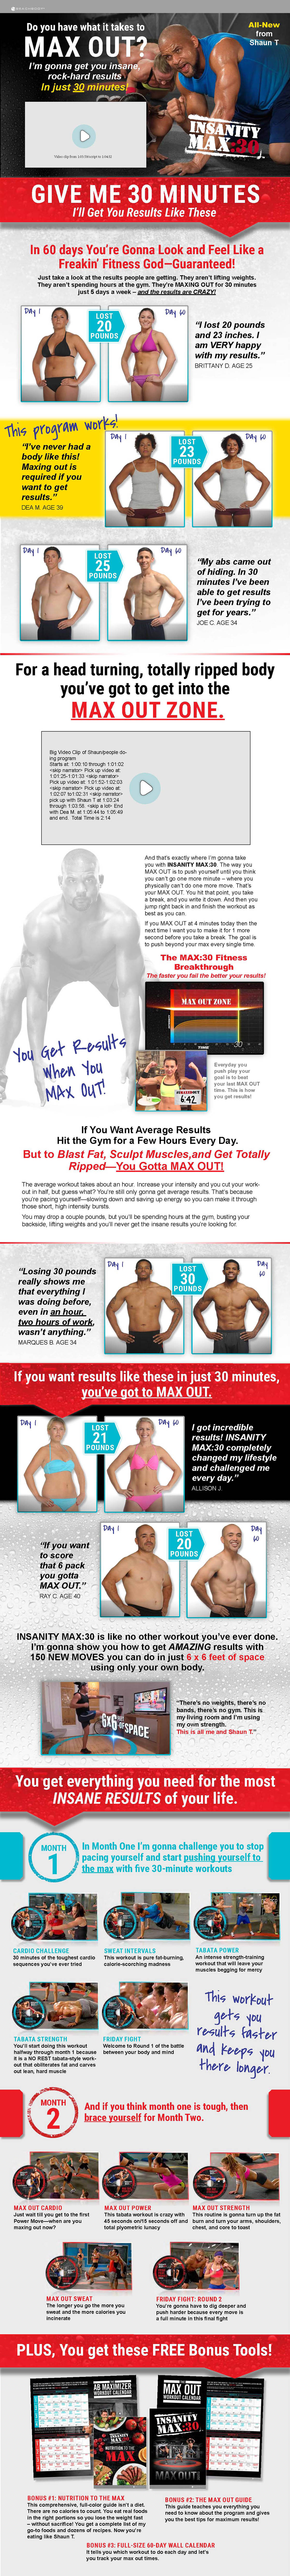 Beachbody: INSANITY MAX:30 landing page on Behance